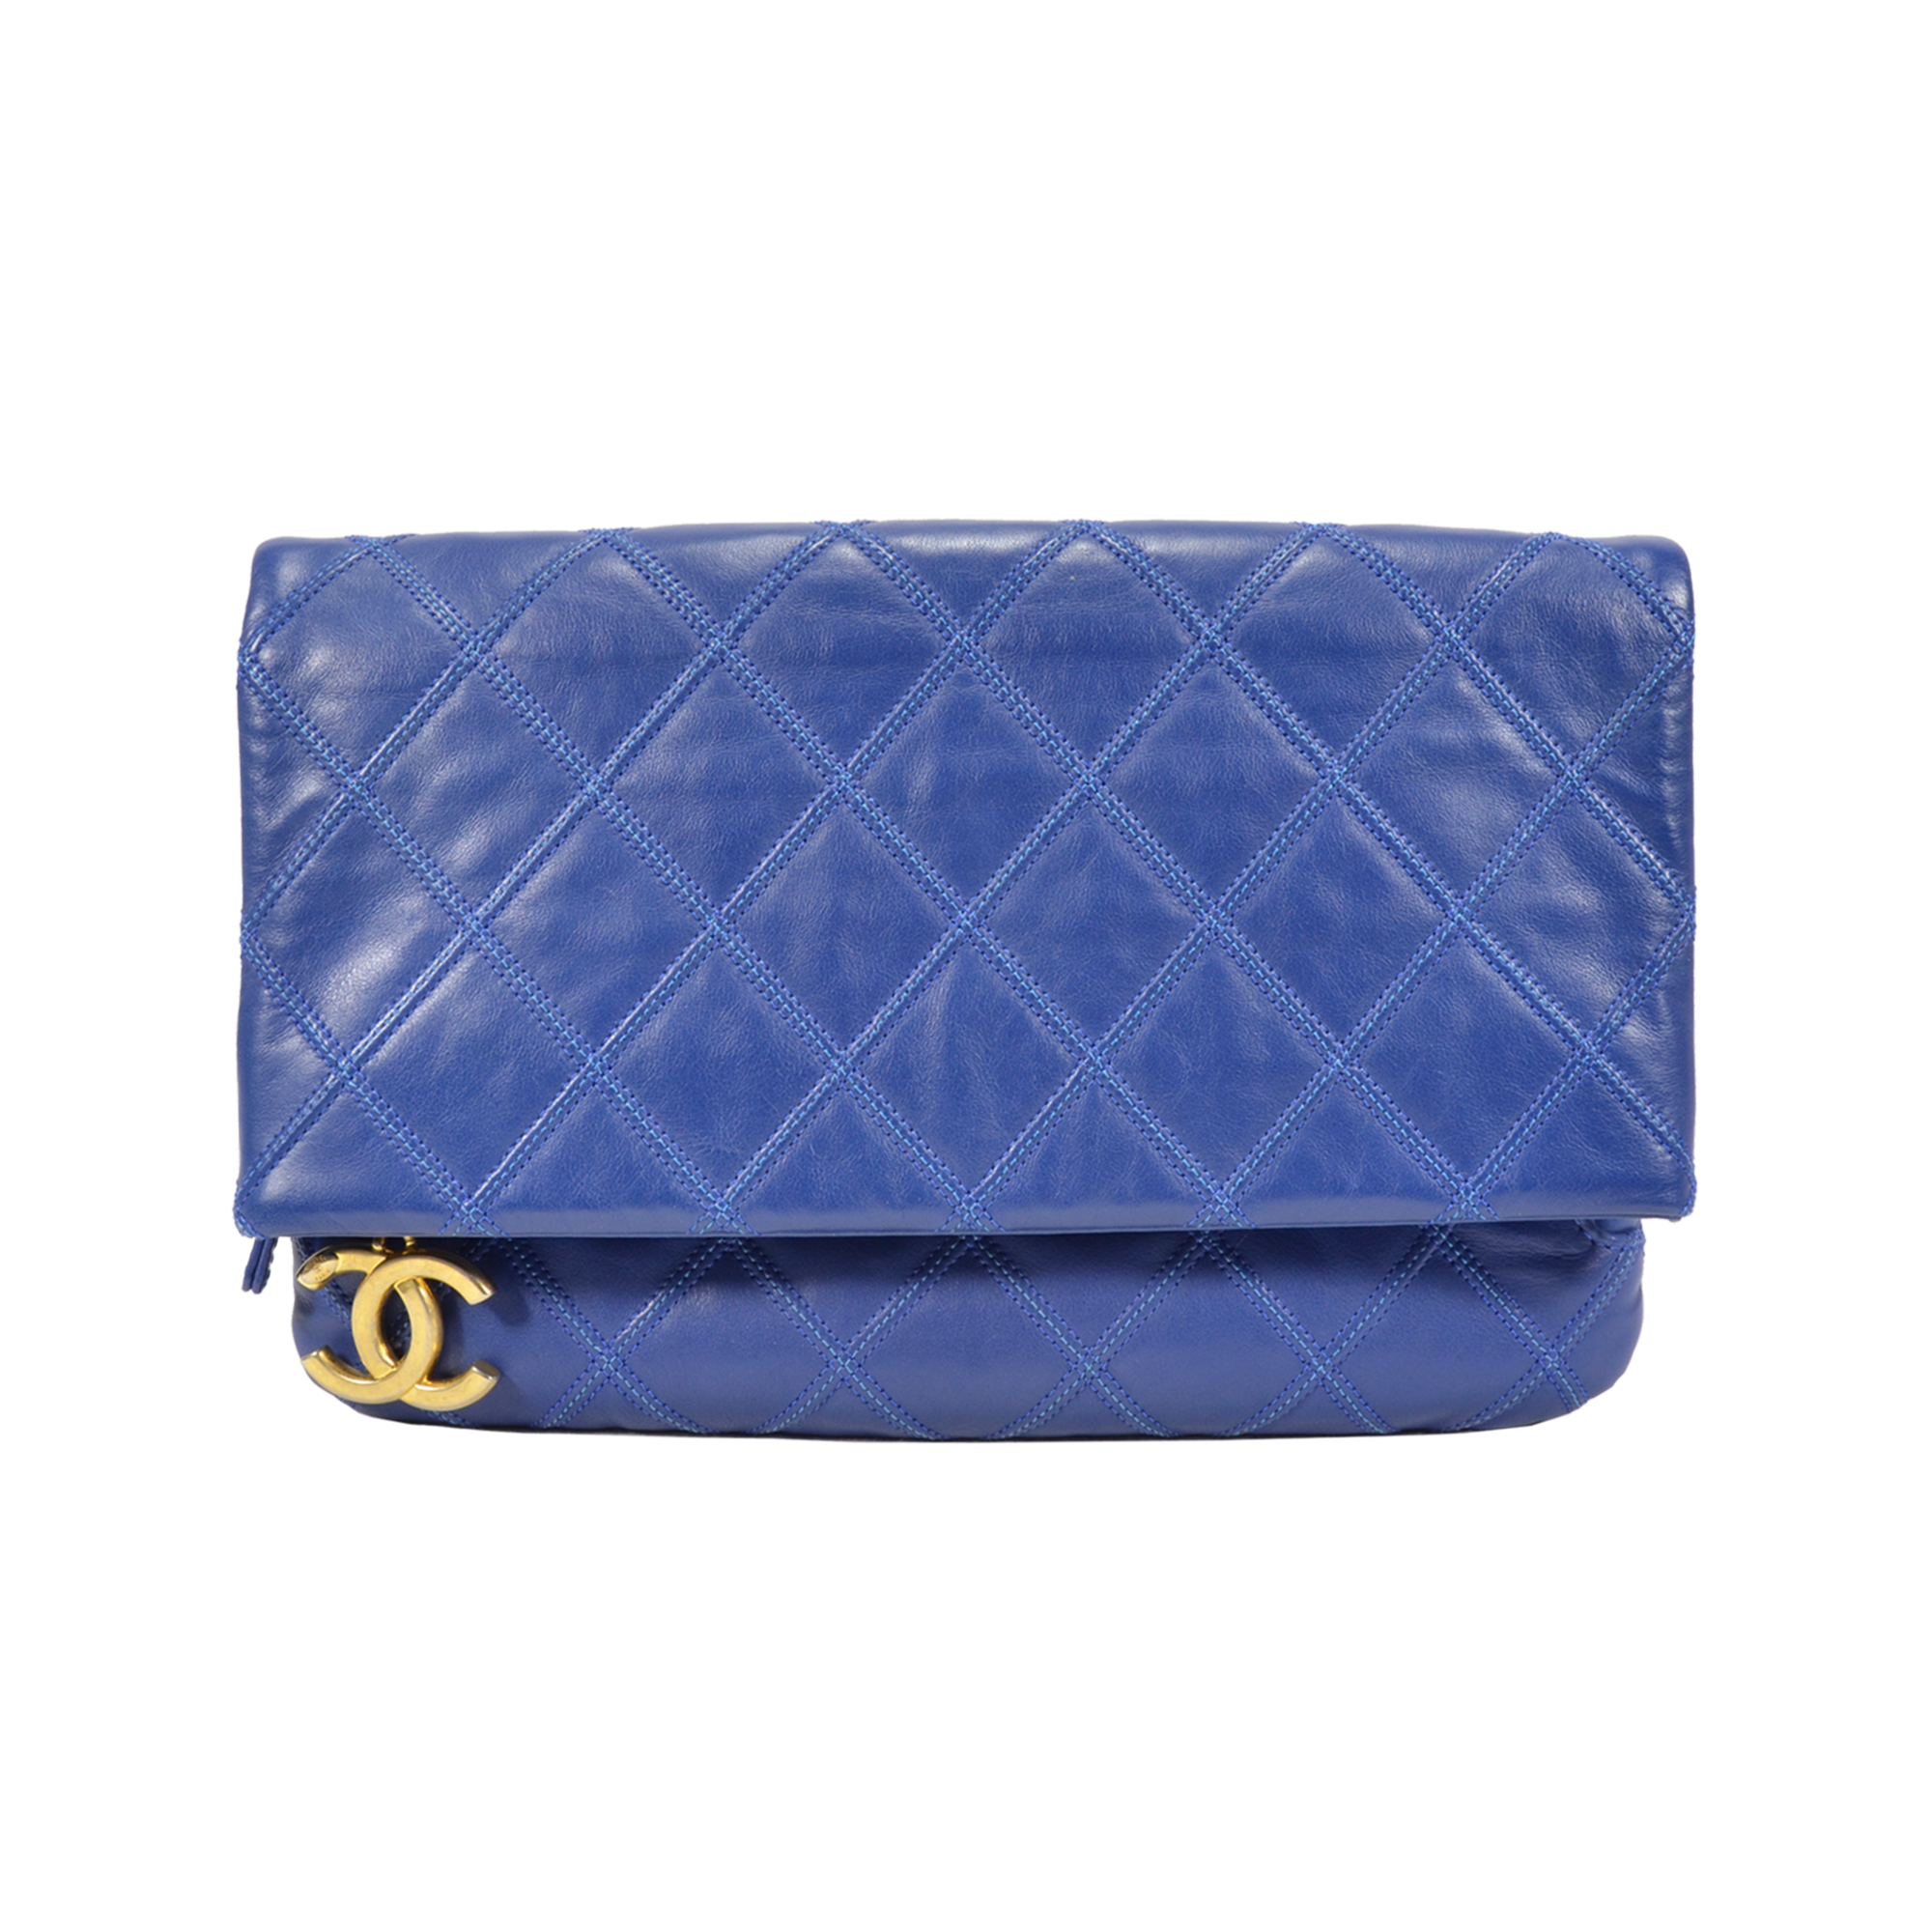 bb2a467758b5 SOLD BN Chanel A69391 Foldover Clutch Pouch Source · Authentic Pre Owned  Chanel CC Foldover Clutch PSS 350 00016 THE FIFTH COLLECTION